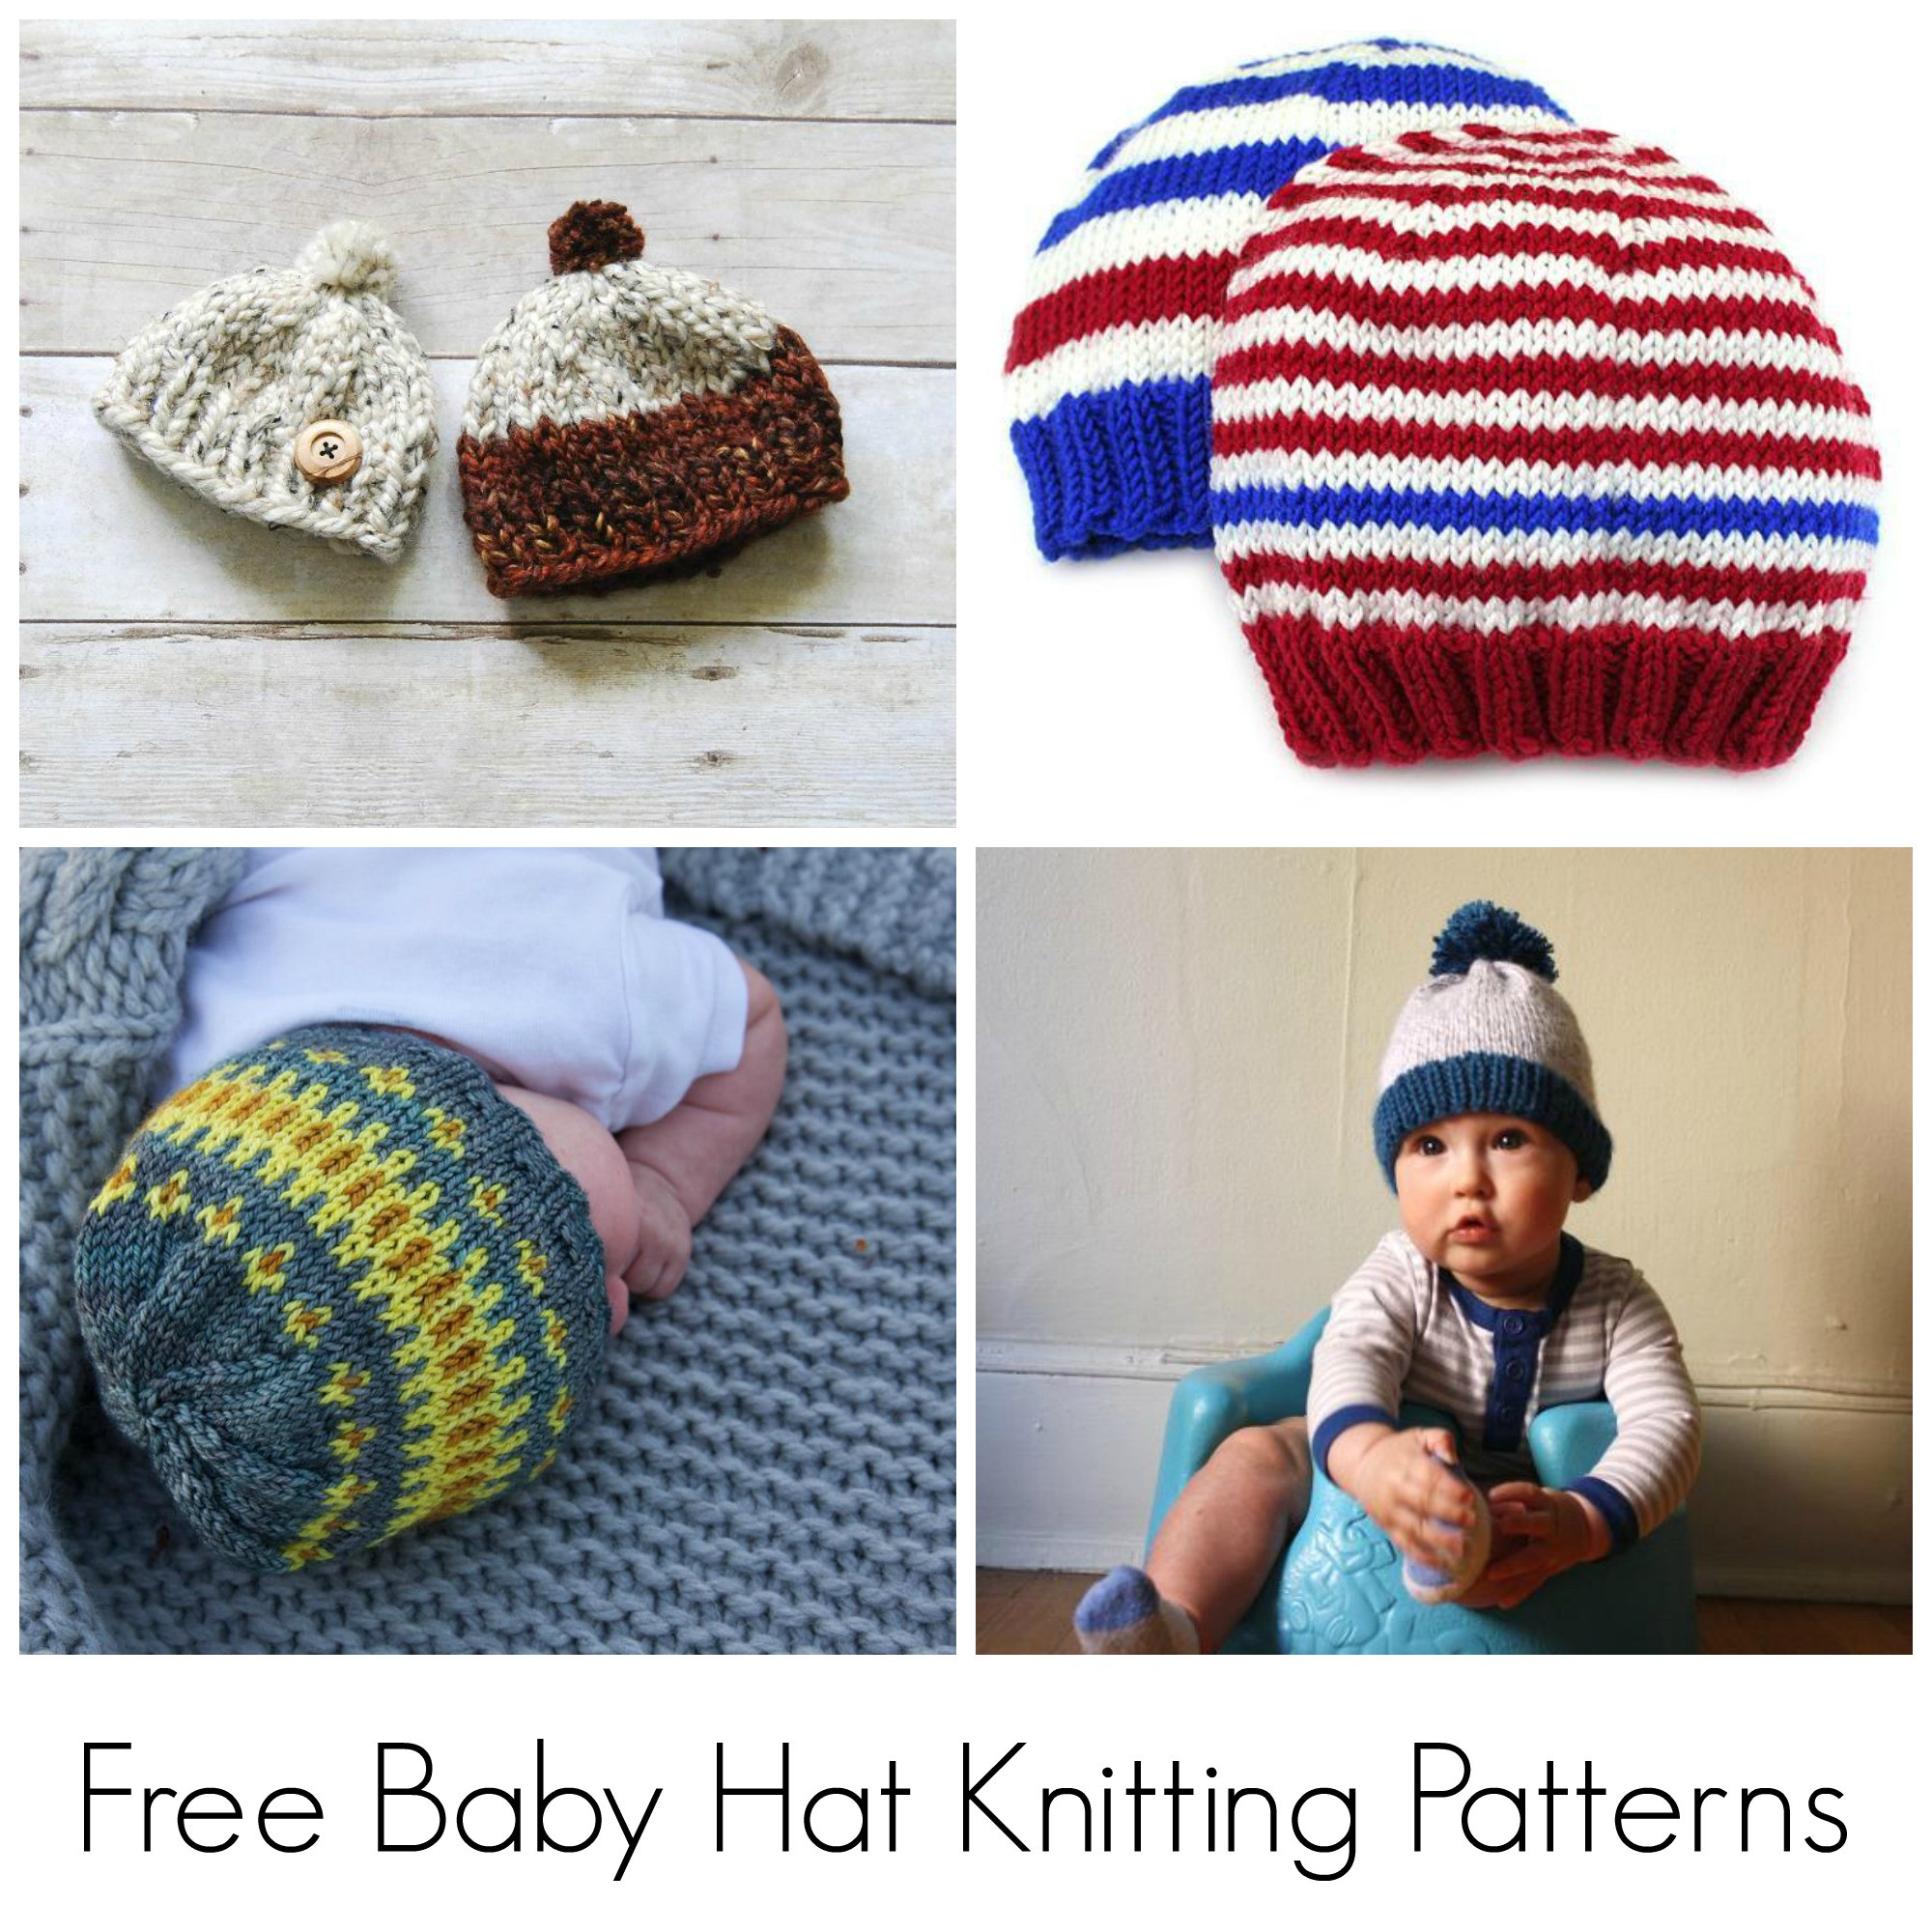 10 FREE Knitting Patterns for Baby Hats on Craftsy